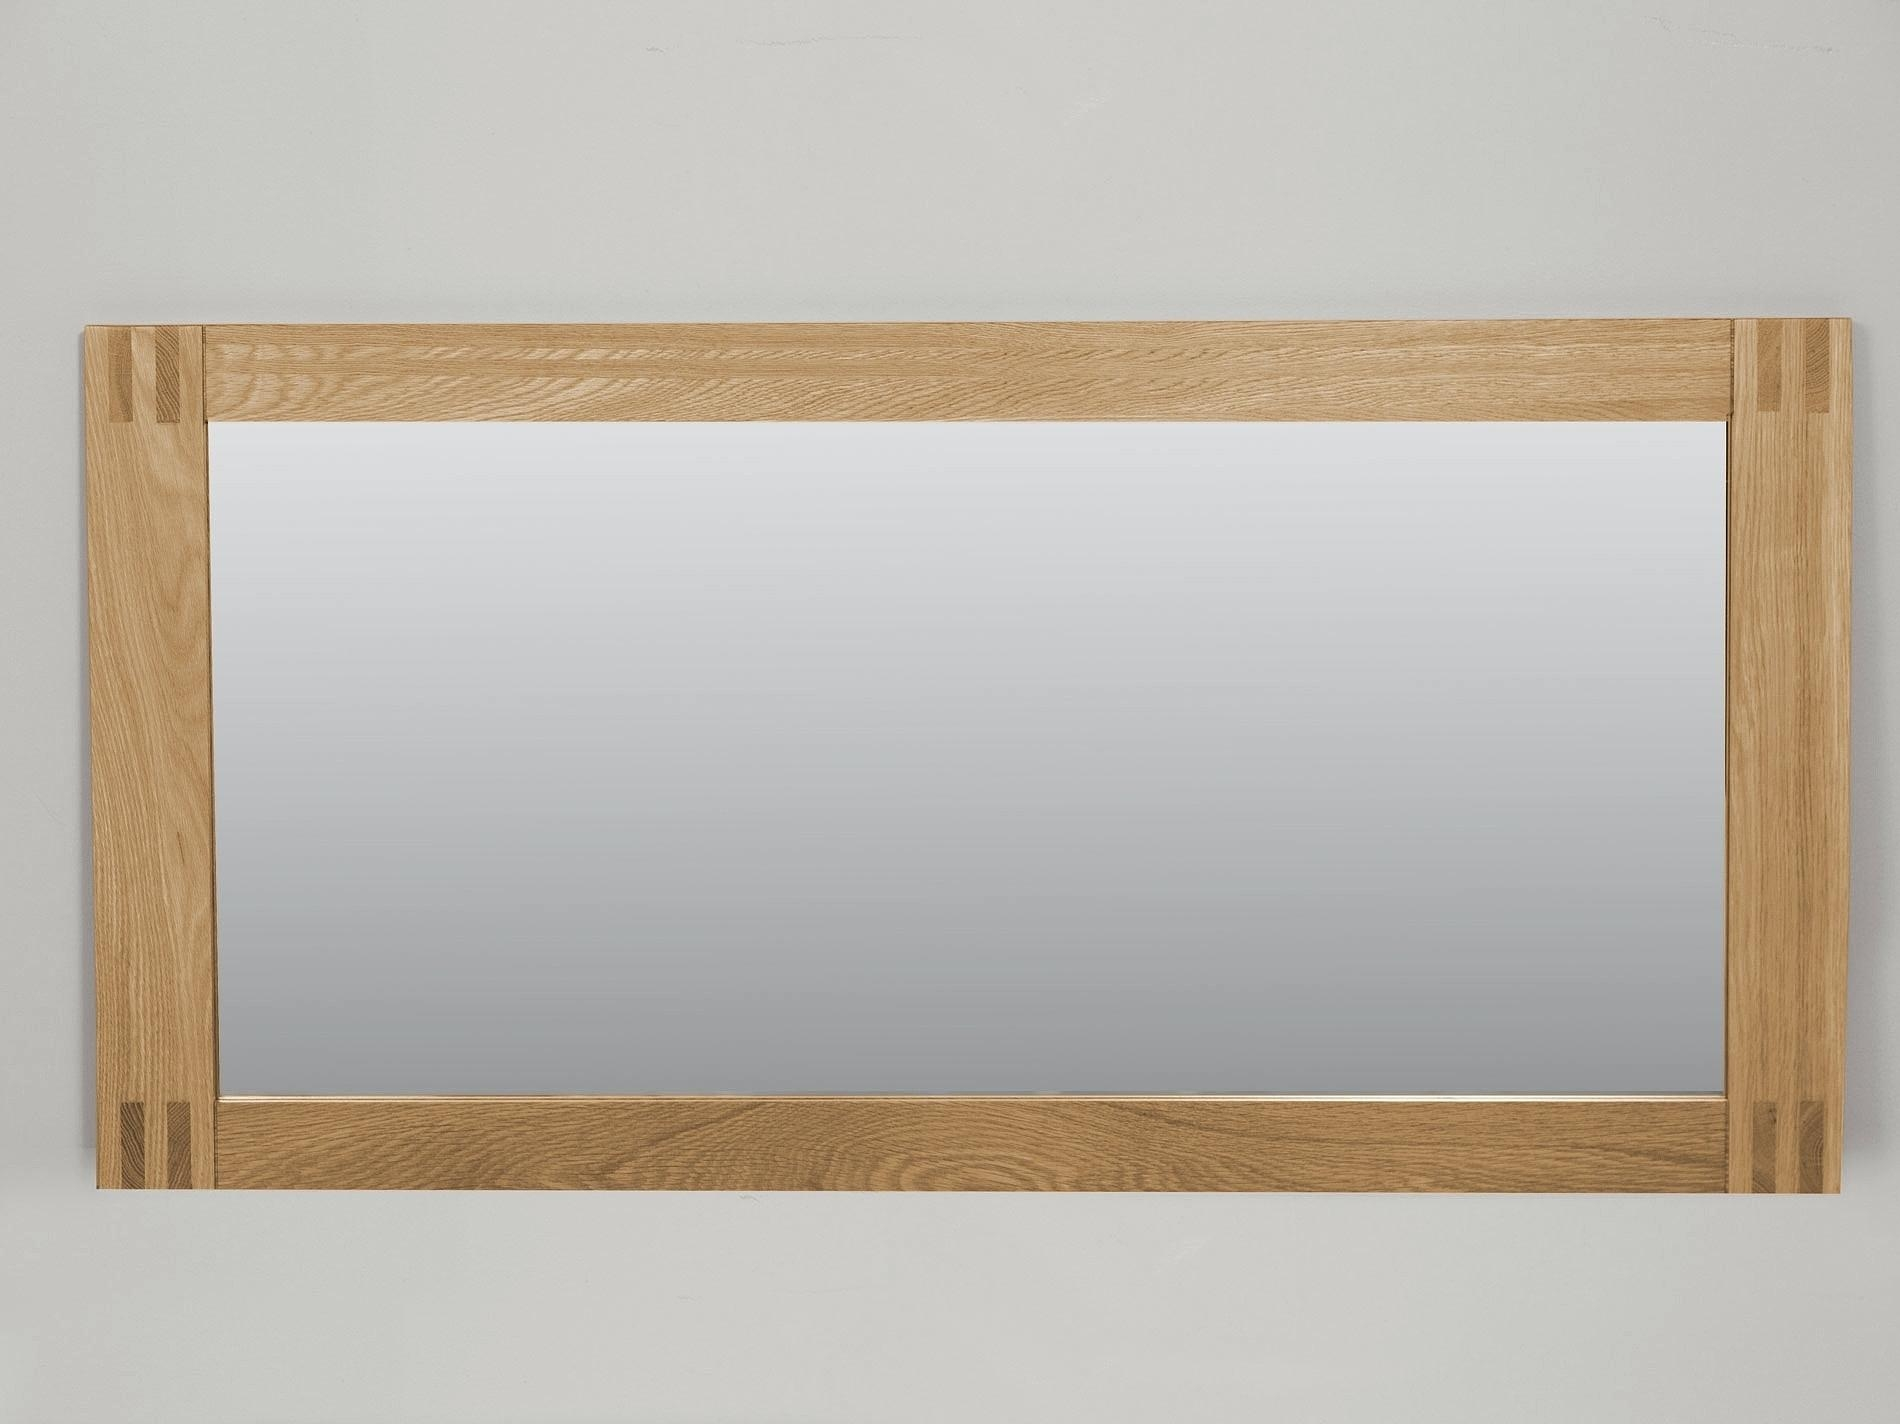 Walloak Framed Full Length Wall Mirror Oak Shopwiz In Rustic Oak Framed Mirrors (Image 14 of 15)